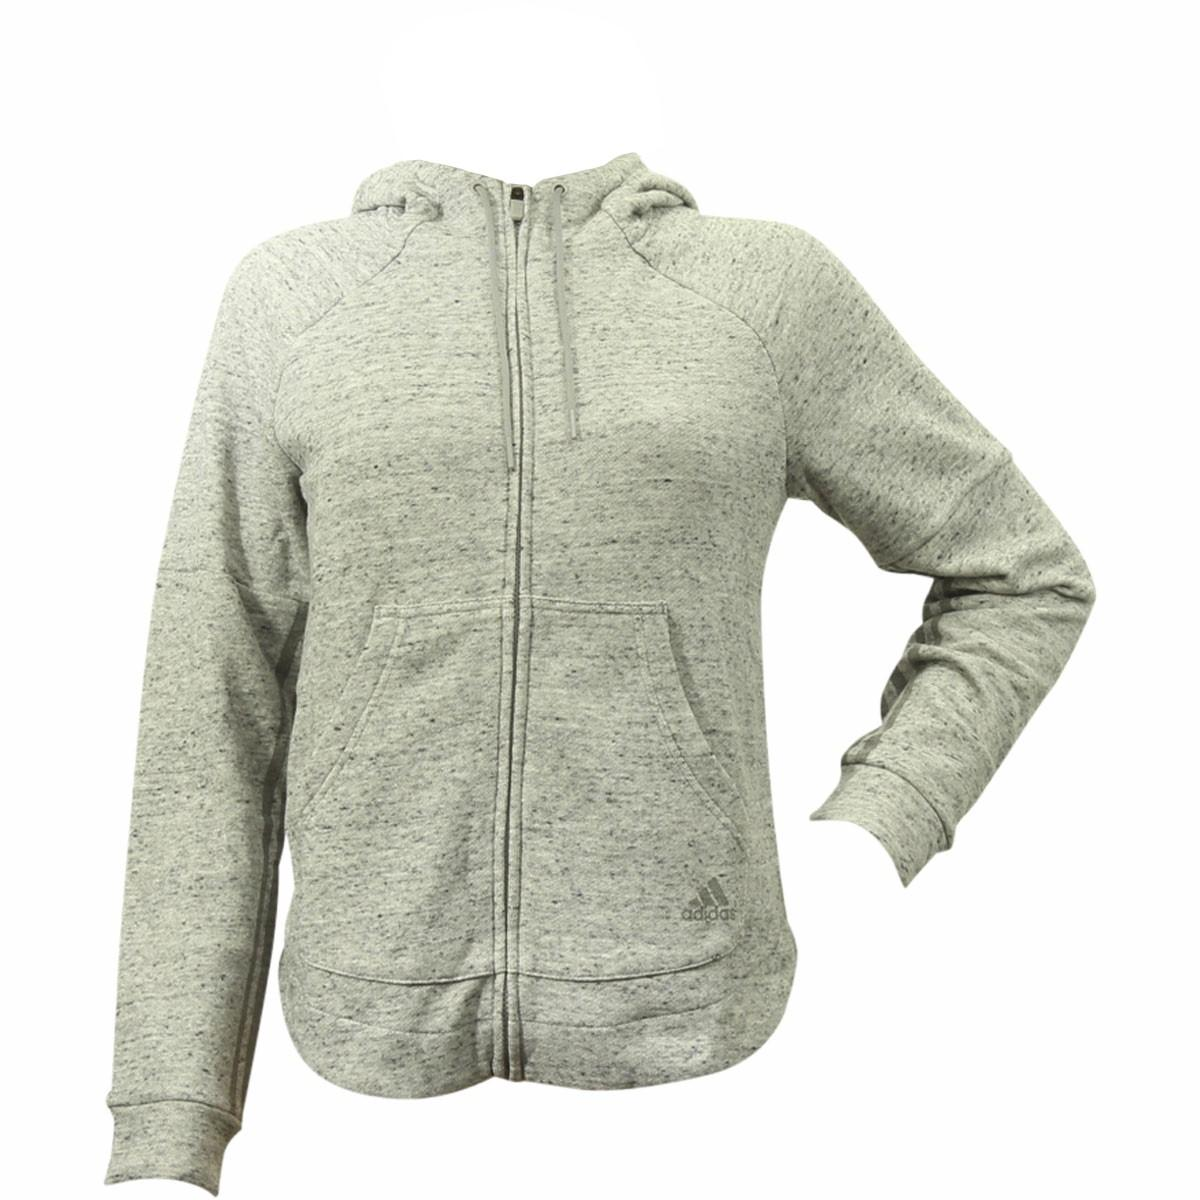 Adidas Women's S2S French Terry Long Sleeve Hoodie Jacket